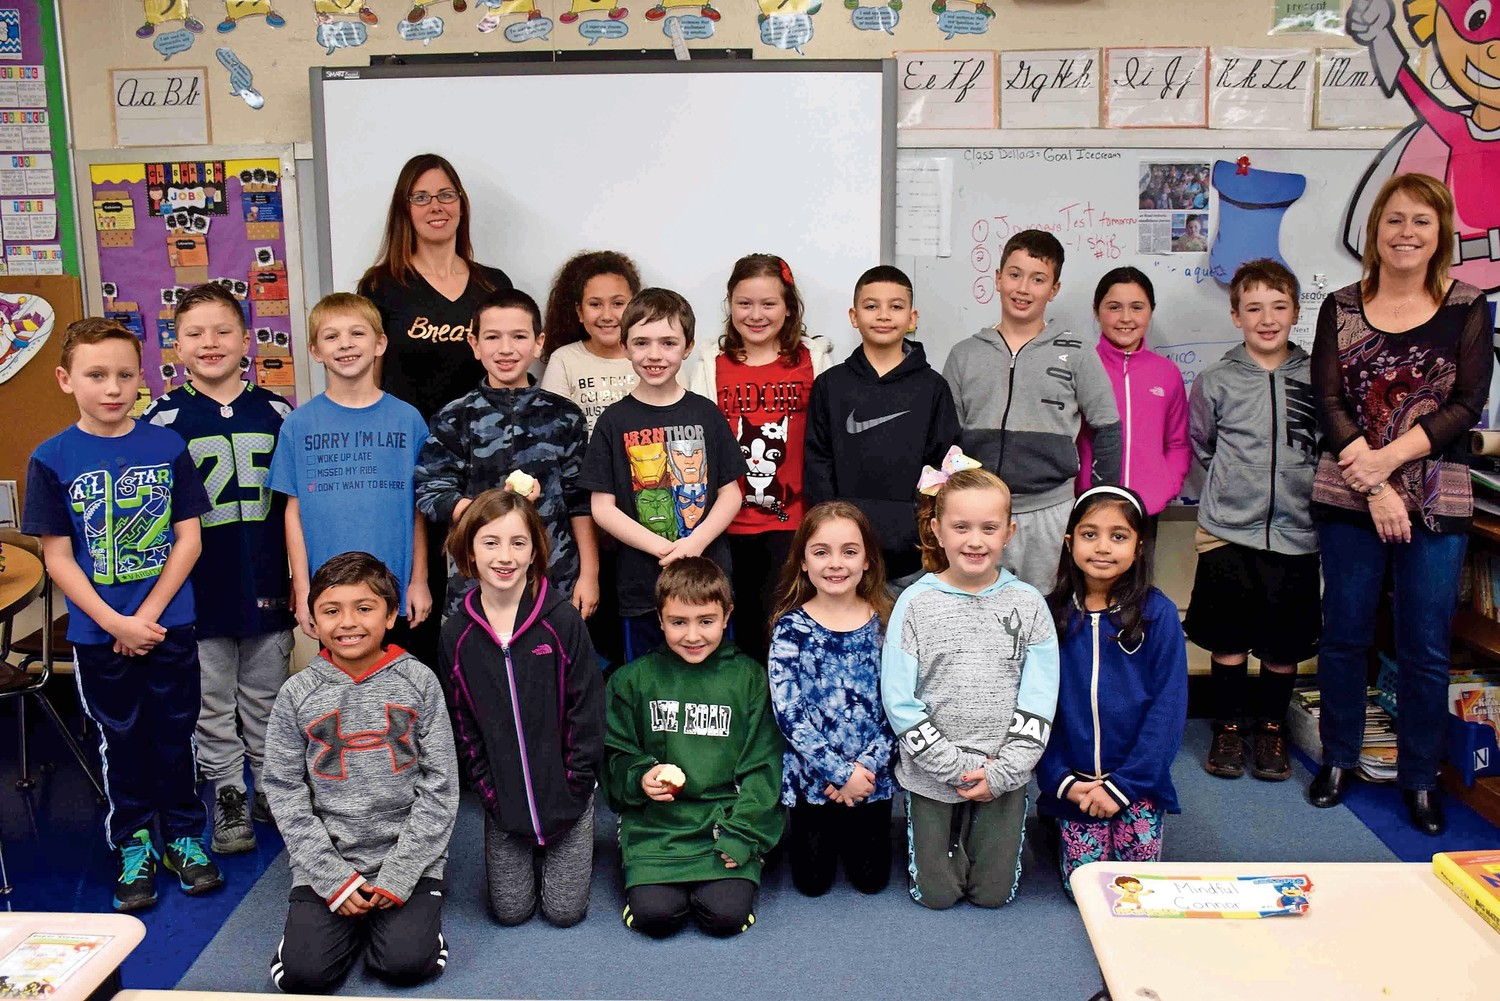 Students in the Mindfulness Club at Lee Road Elementary School in North Wantagh discussed the importance of a healthy lifestyle with advisor Melanie Anderson, back left, and assistant teacher Arlene Zabatta, back right, at a meeting on Dec. 8.